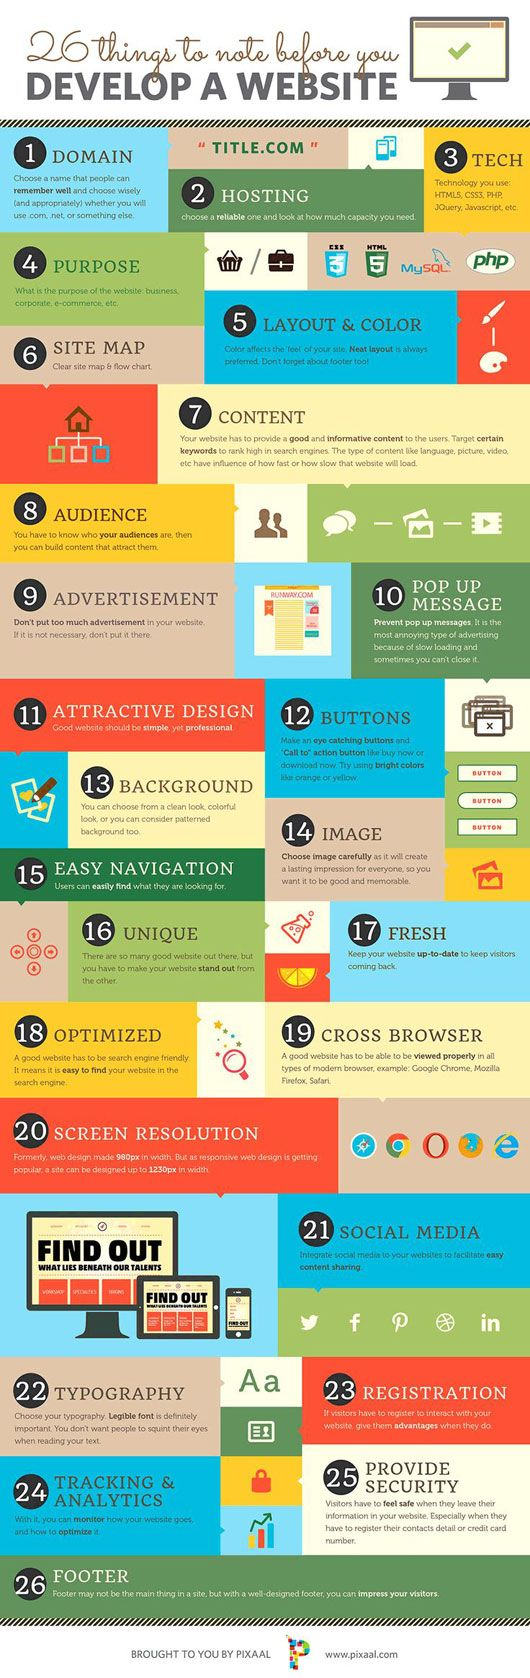 26 Basic Things to Note when Develop a Website | #infographic #website http://www.intelisystems.com